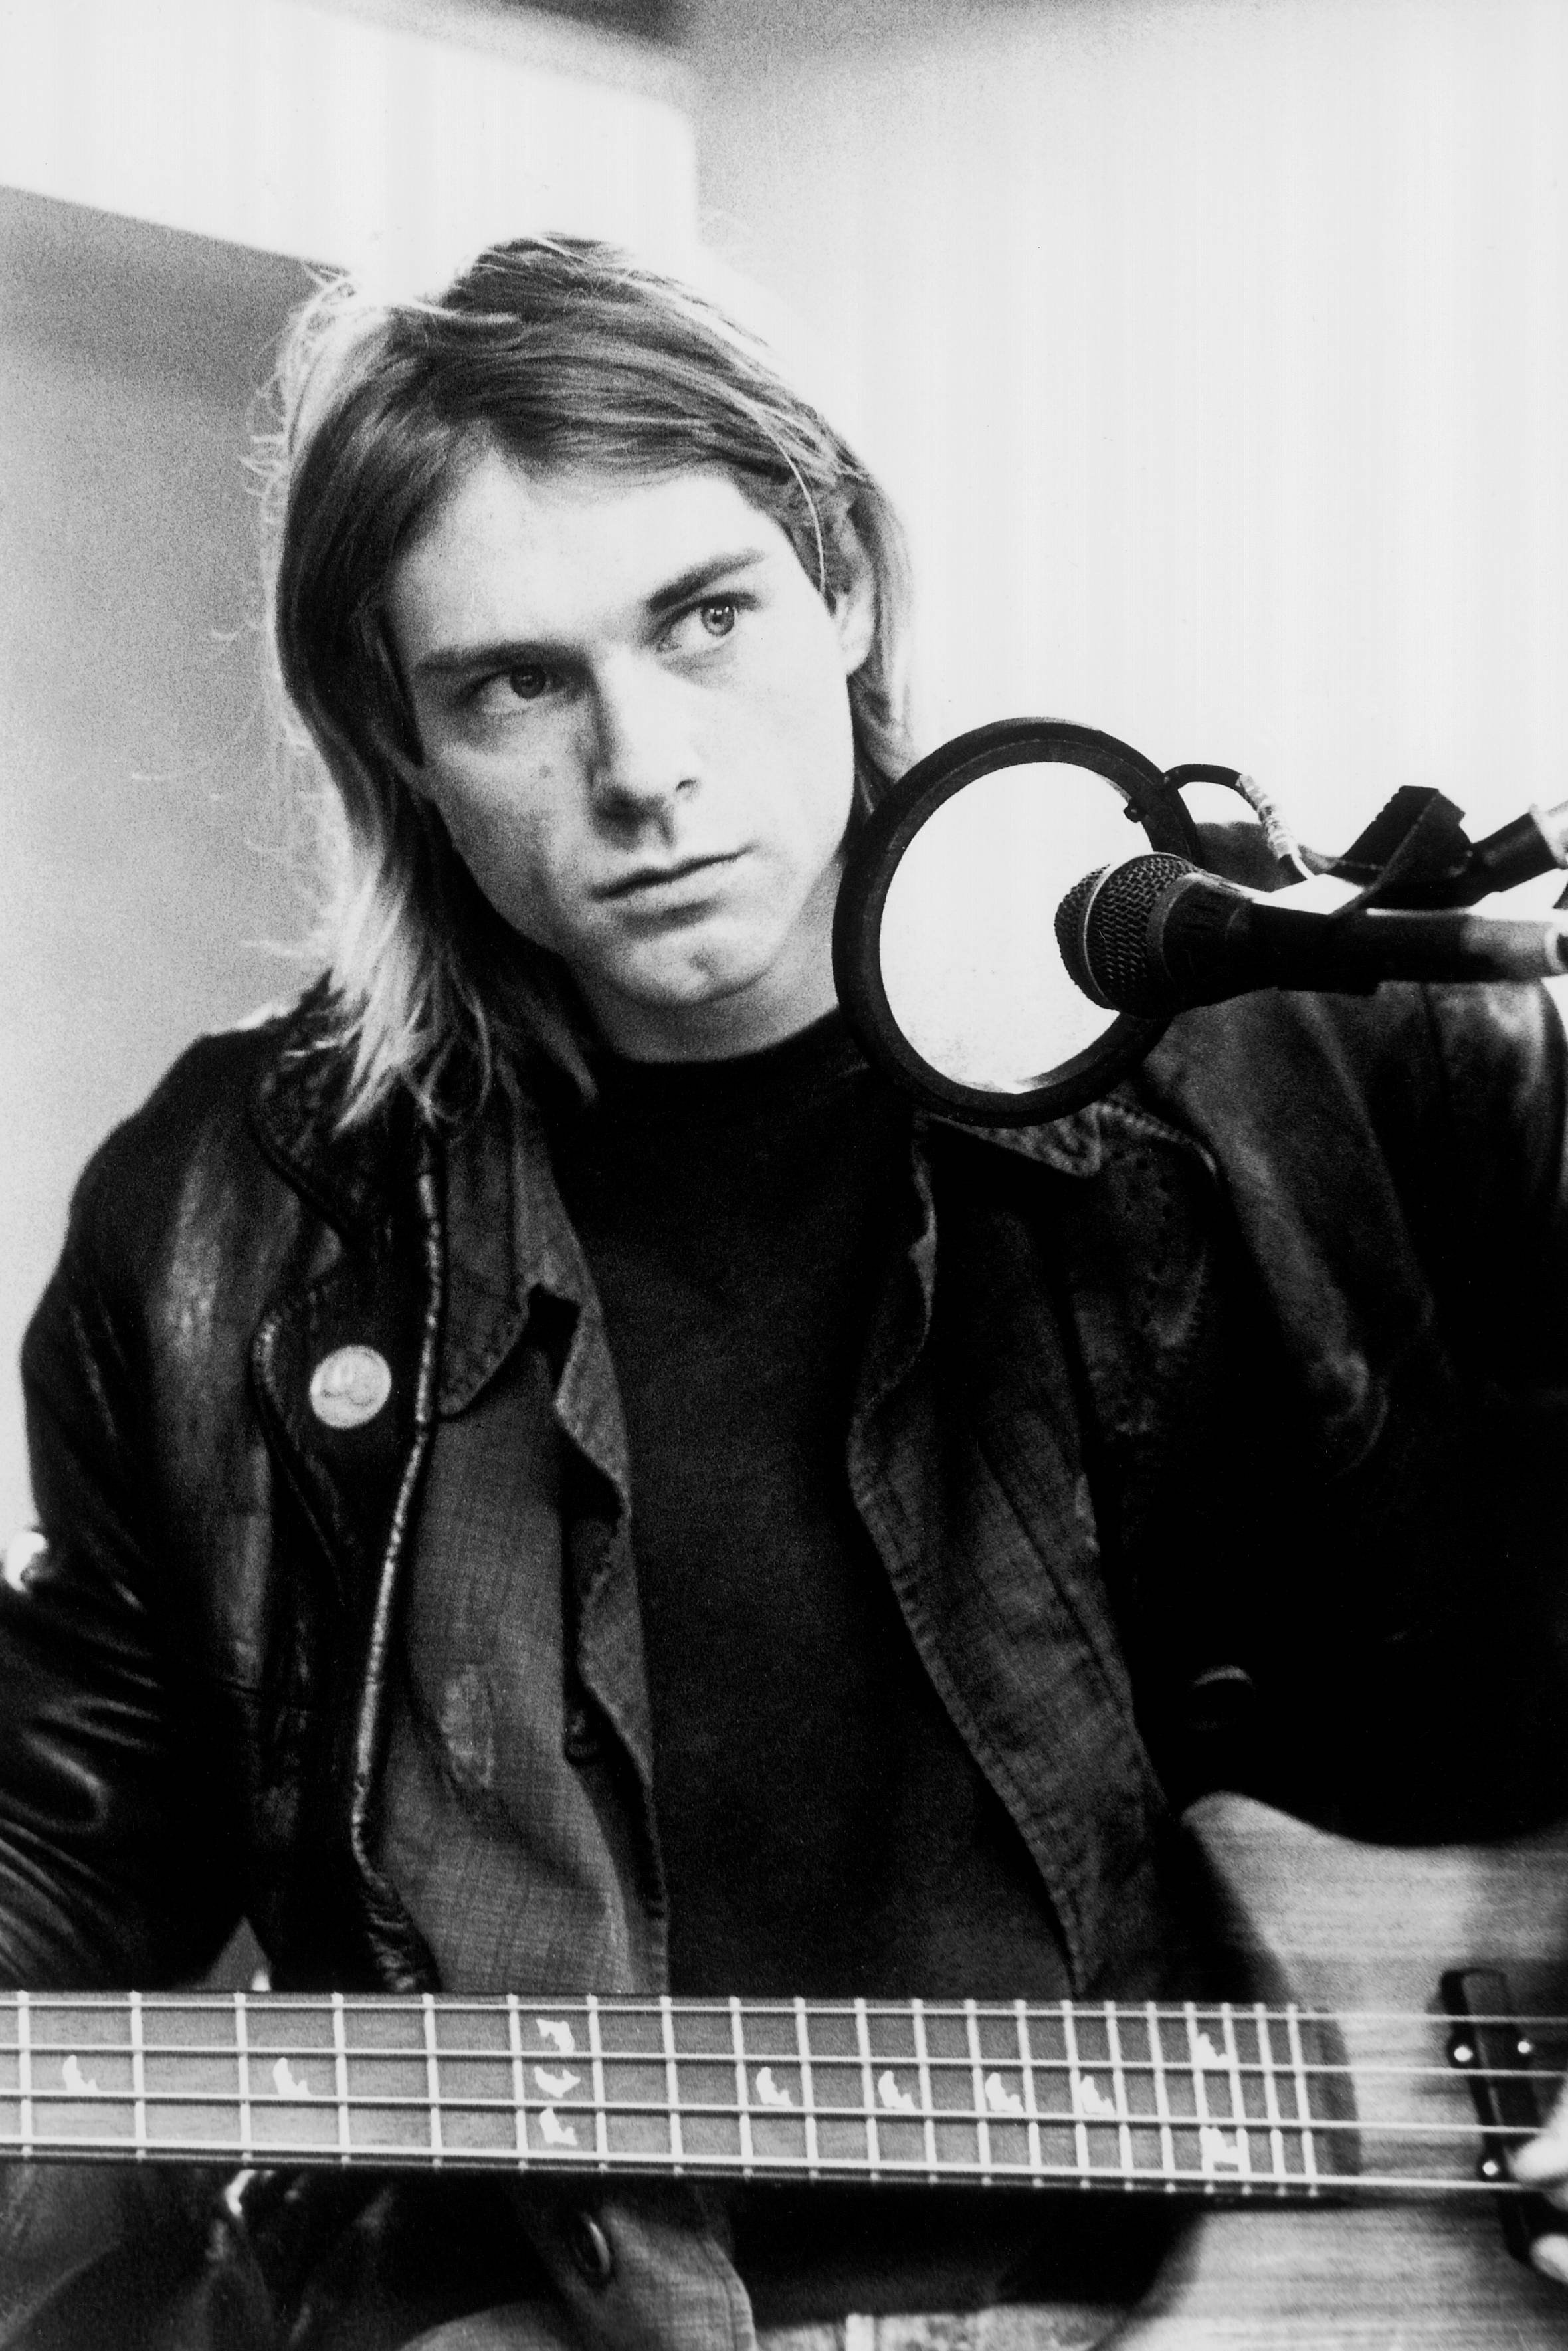 00bbfdb39 You would have thought that, 21 years after Kurt Cobain took his own life,  there would be precious few facts left to unearth about the Nirvana  frontman.